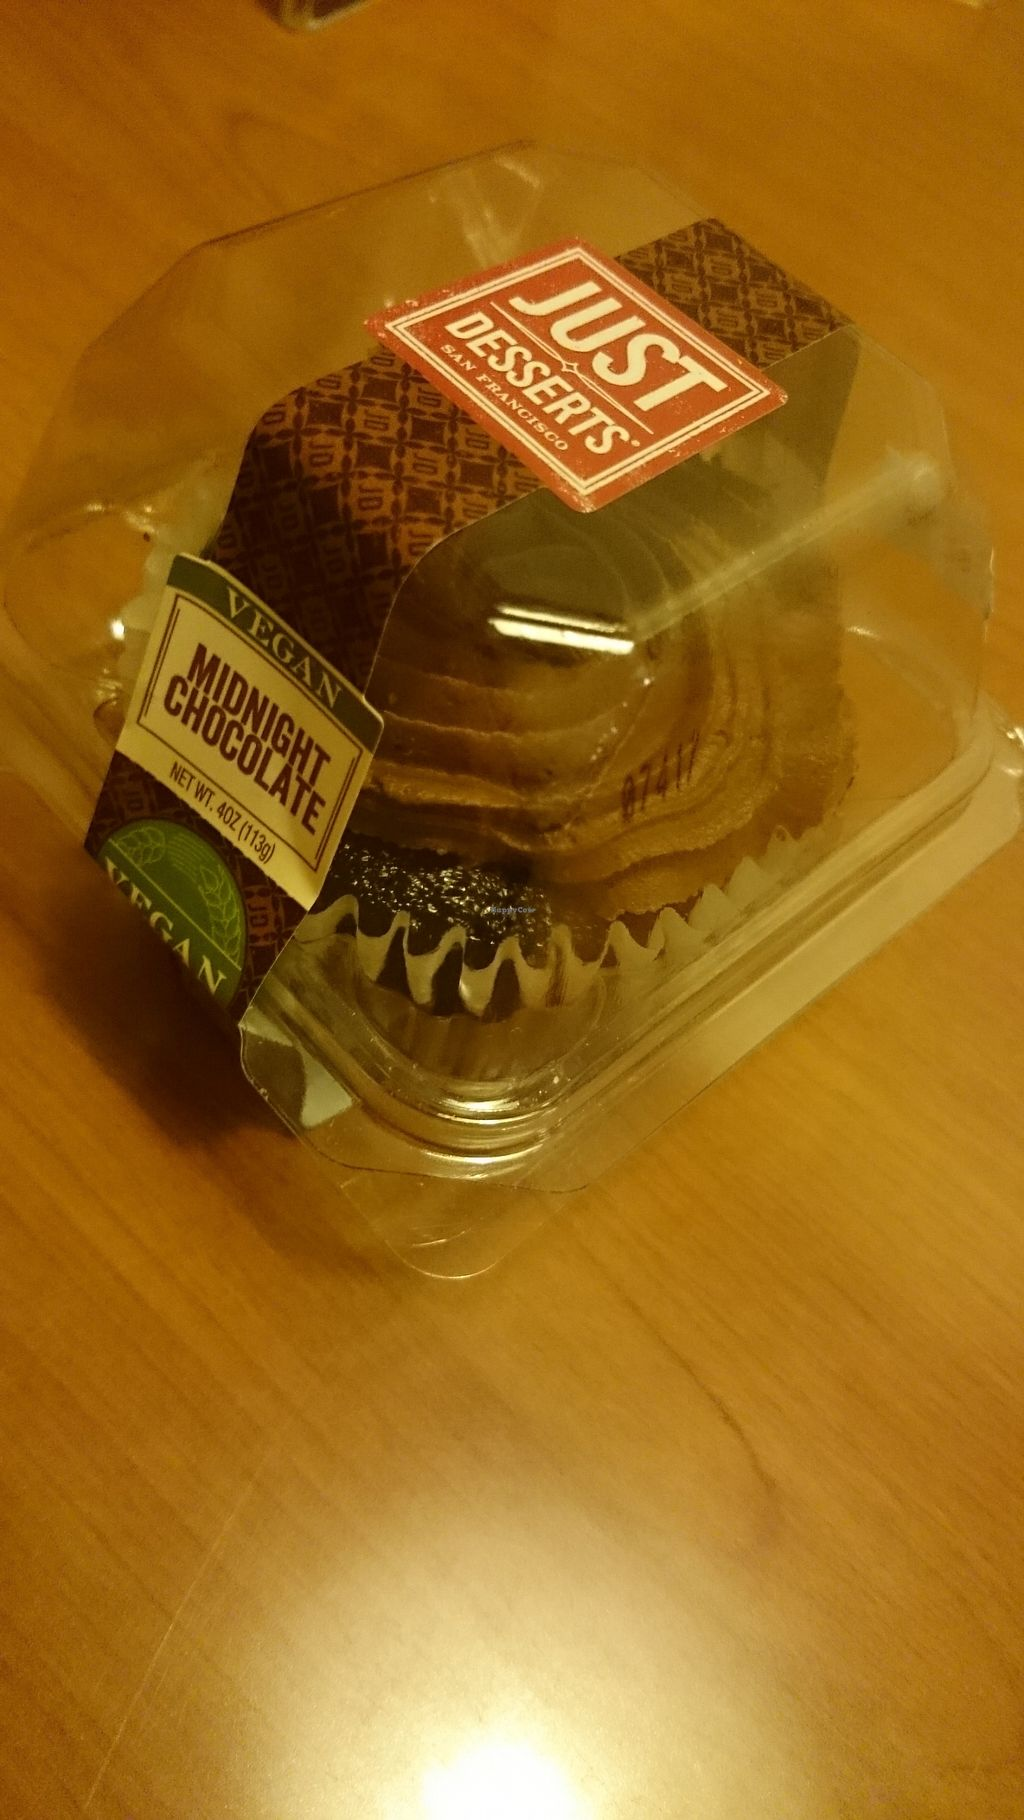 """Photo of Whole Foods Market - Las Vegas Blvd  by <a href=""""/members/profile/chb-pbfp"""">chb-pbfp</a> <br/>Dessert <br/> August 26, 2017  - <a href='/contact/abuse/image/4869/297566'>Report</a>"""